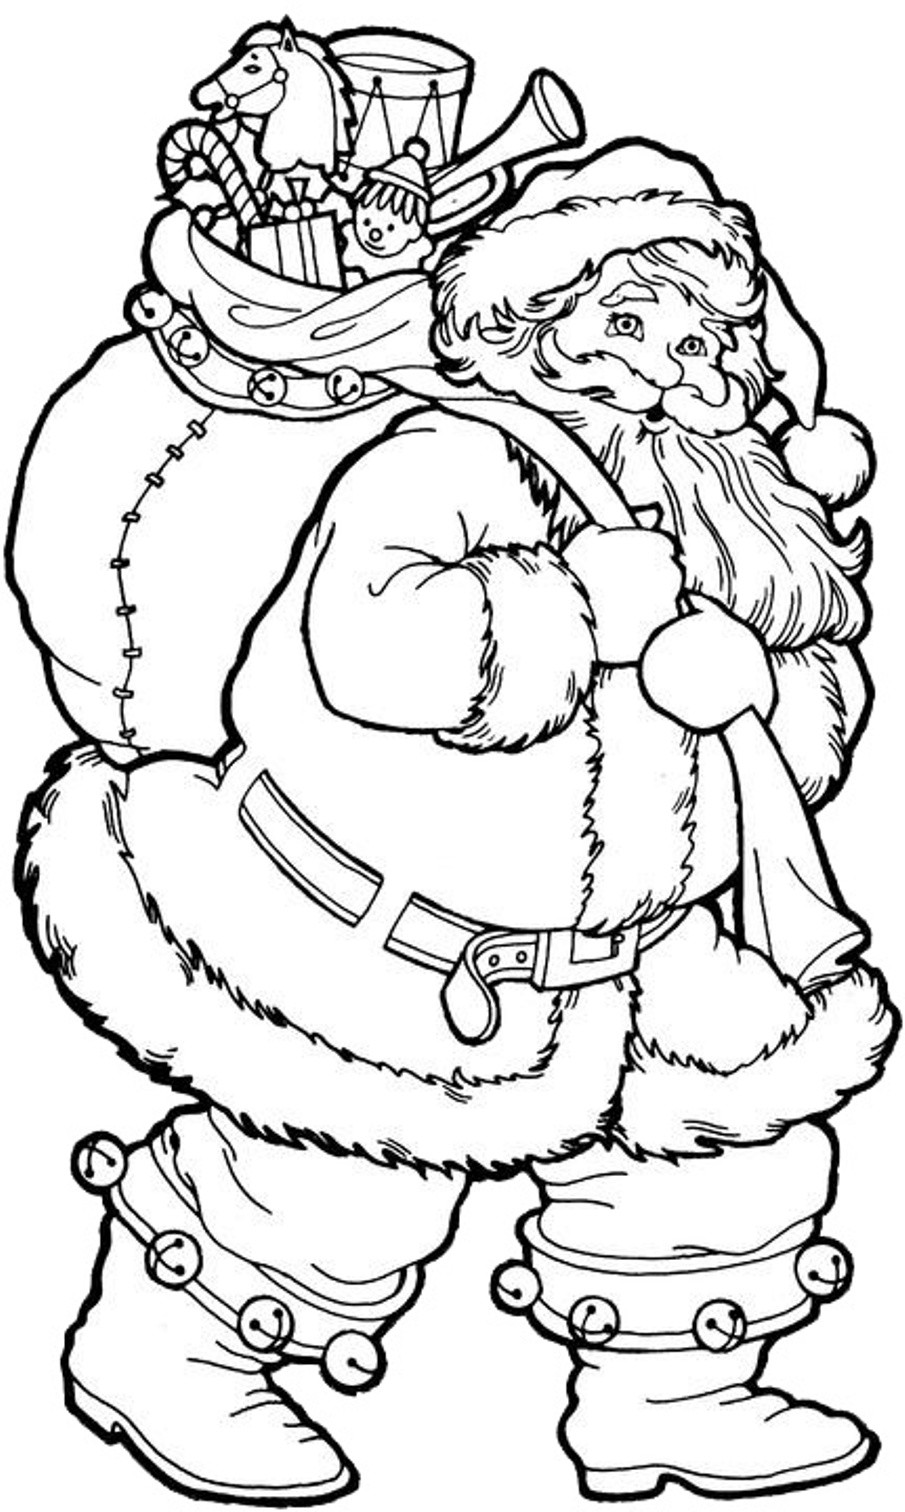 Xmas Coloring Pics With Christmas Tree Pages Best Of In Napisy Me